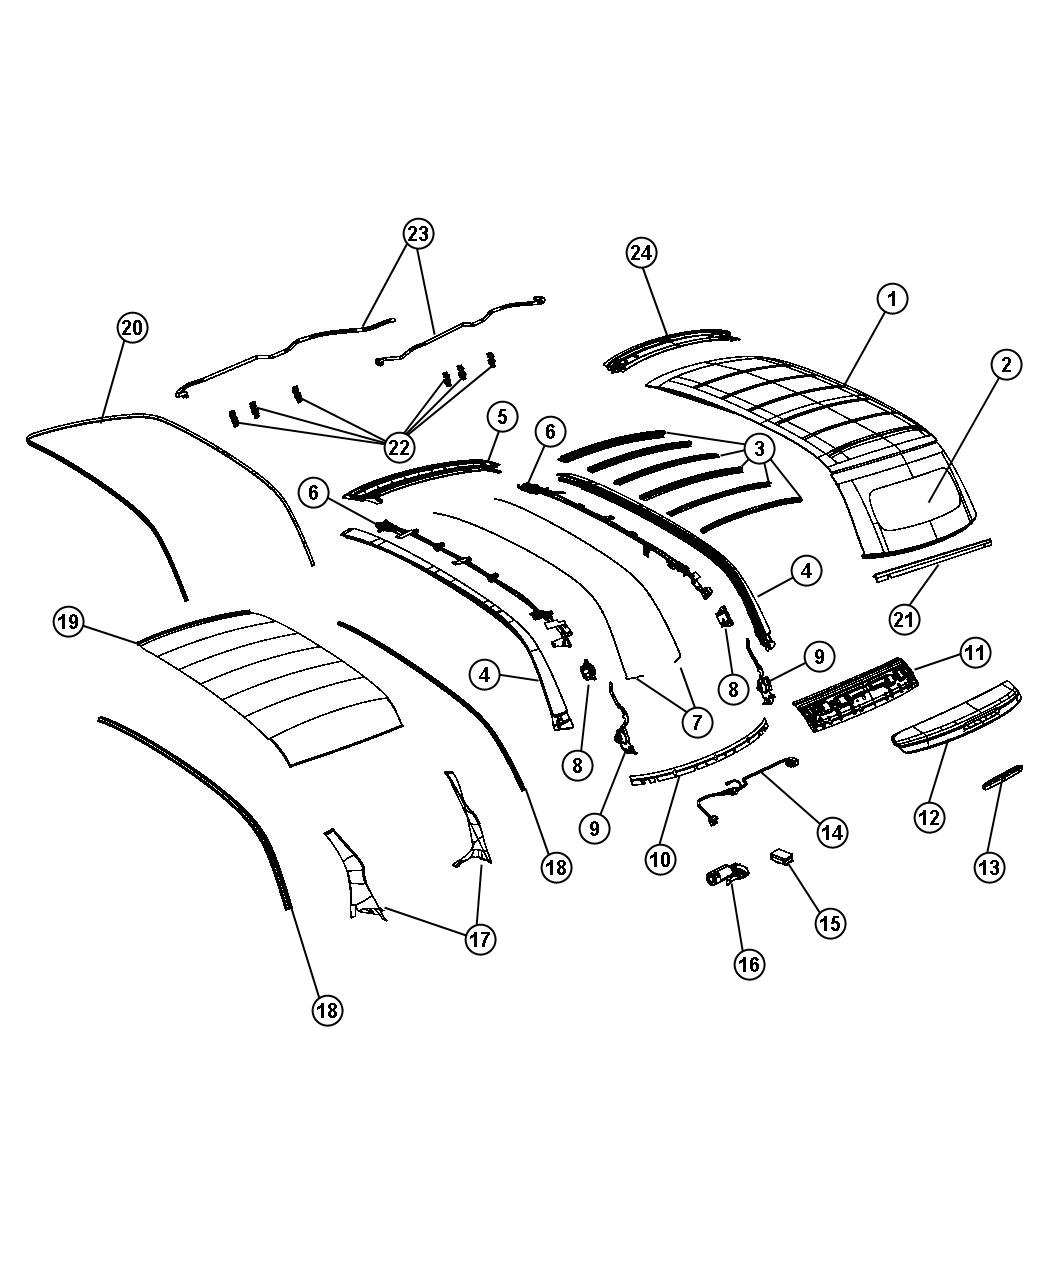 Diagram Convertible Top. for your Fiat 500C